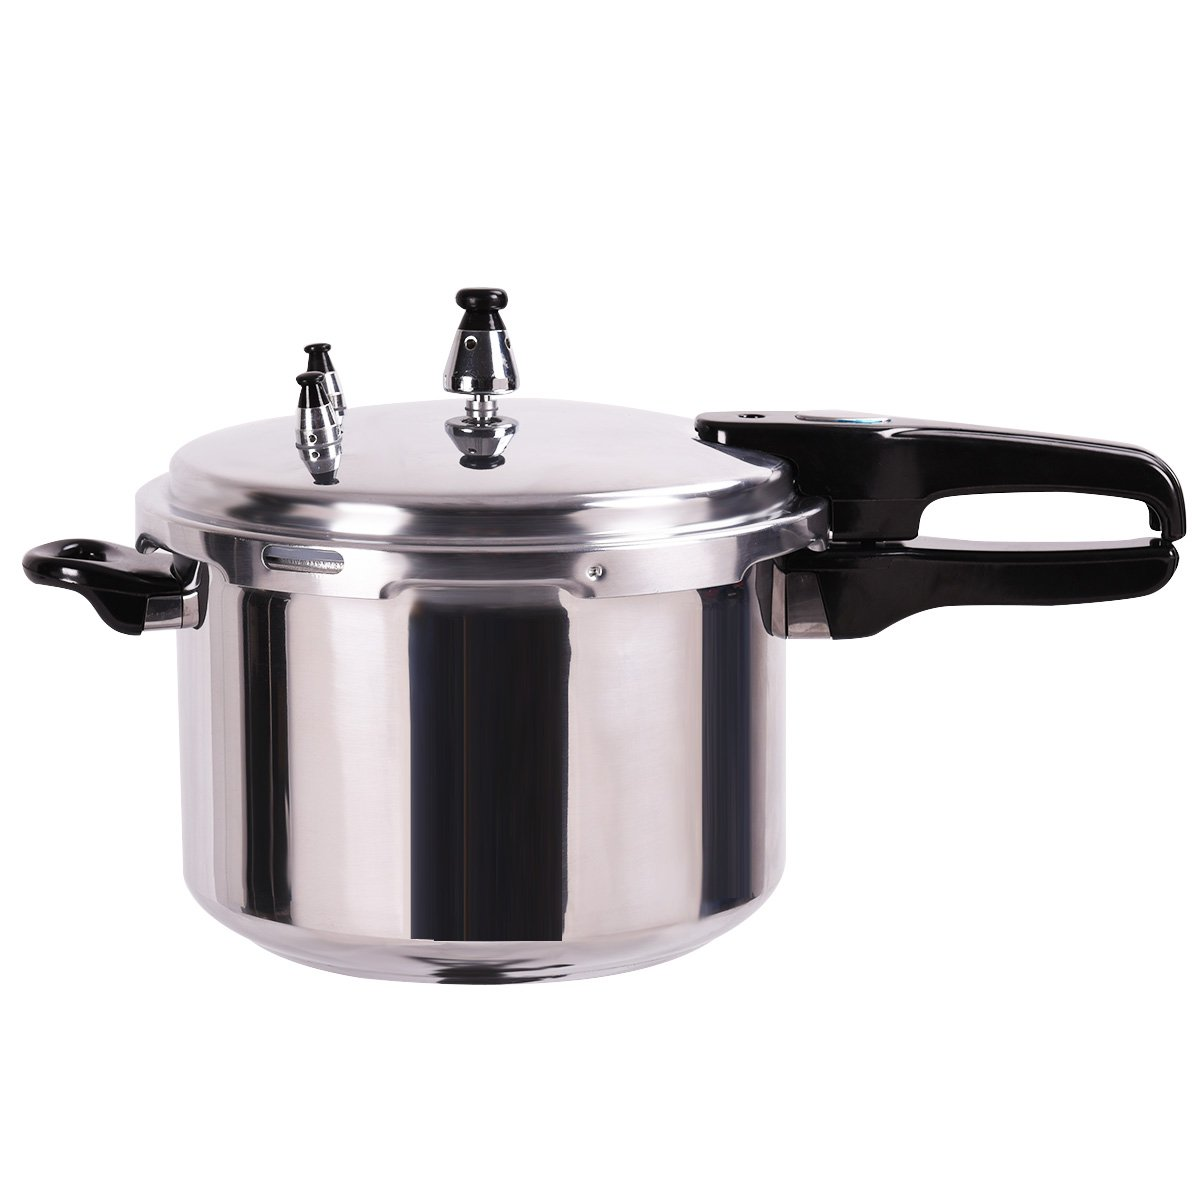 DPThouse Pressure Cooker Aluminum Kitchen Cookware Canner Pot Fast Pressure Cooker 6-Quart